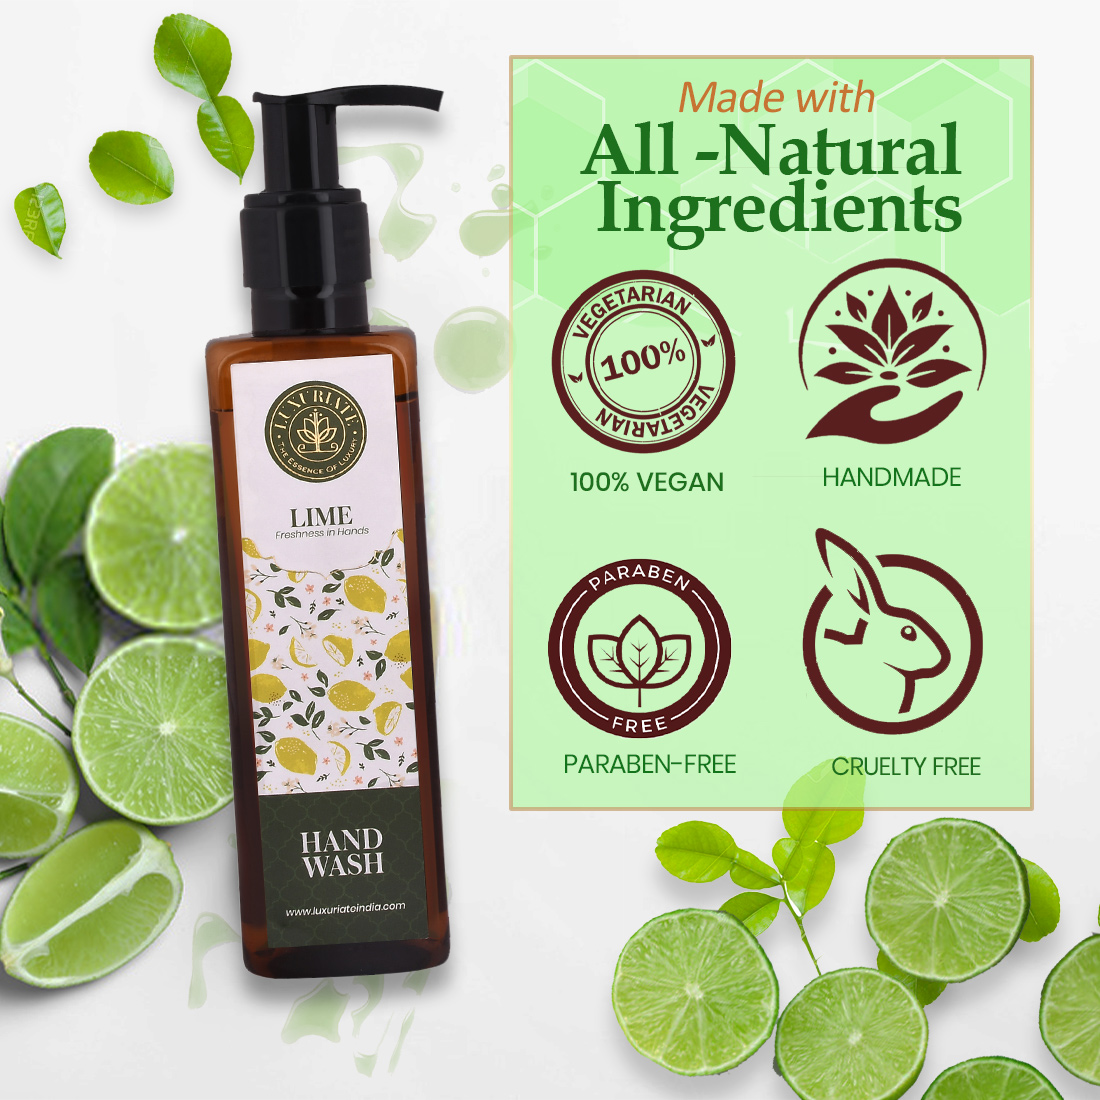 LUXURIATE Lime Freshness in Hands Removes Germs, Refreshing Fragrance Gentle Foaming Hand Wash Liquid Soap, 200 ml